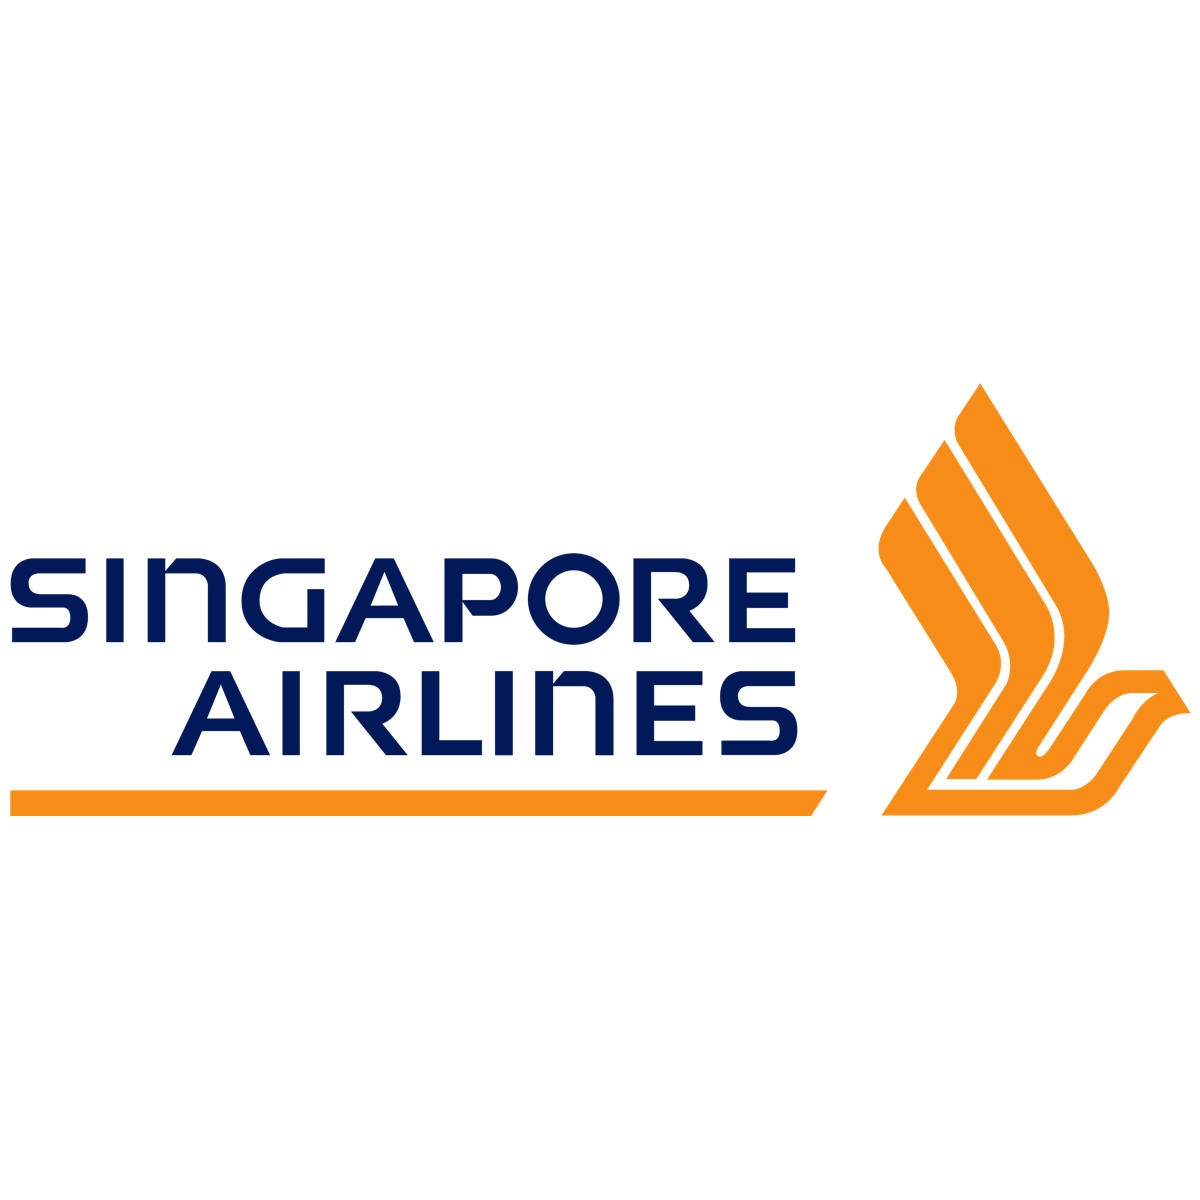 Singapore Airlines (SIA SP) - UOB Kay Hian 2017-02-08: 3QFY17 A Good Quarter As SIA Benefits From Surge In Cargo Profits